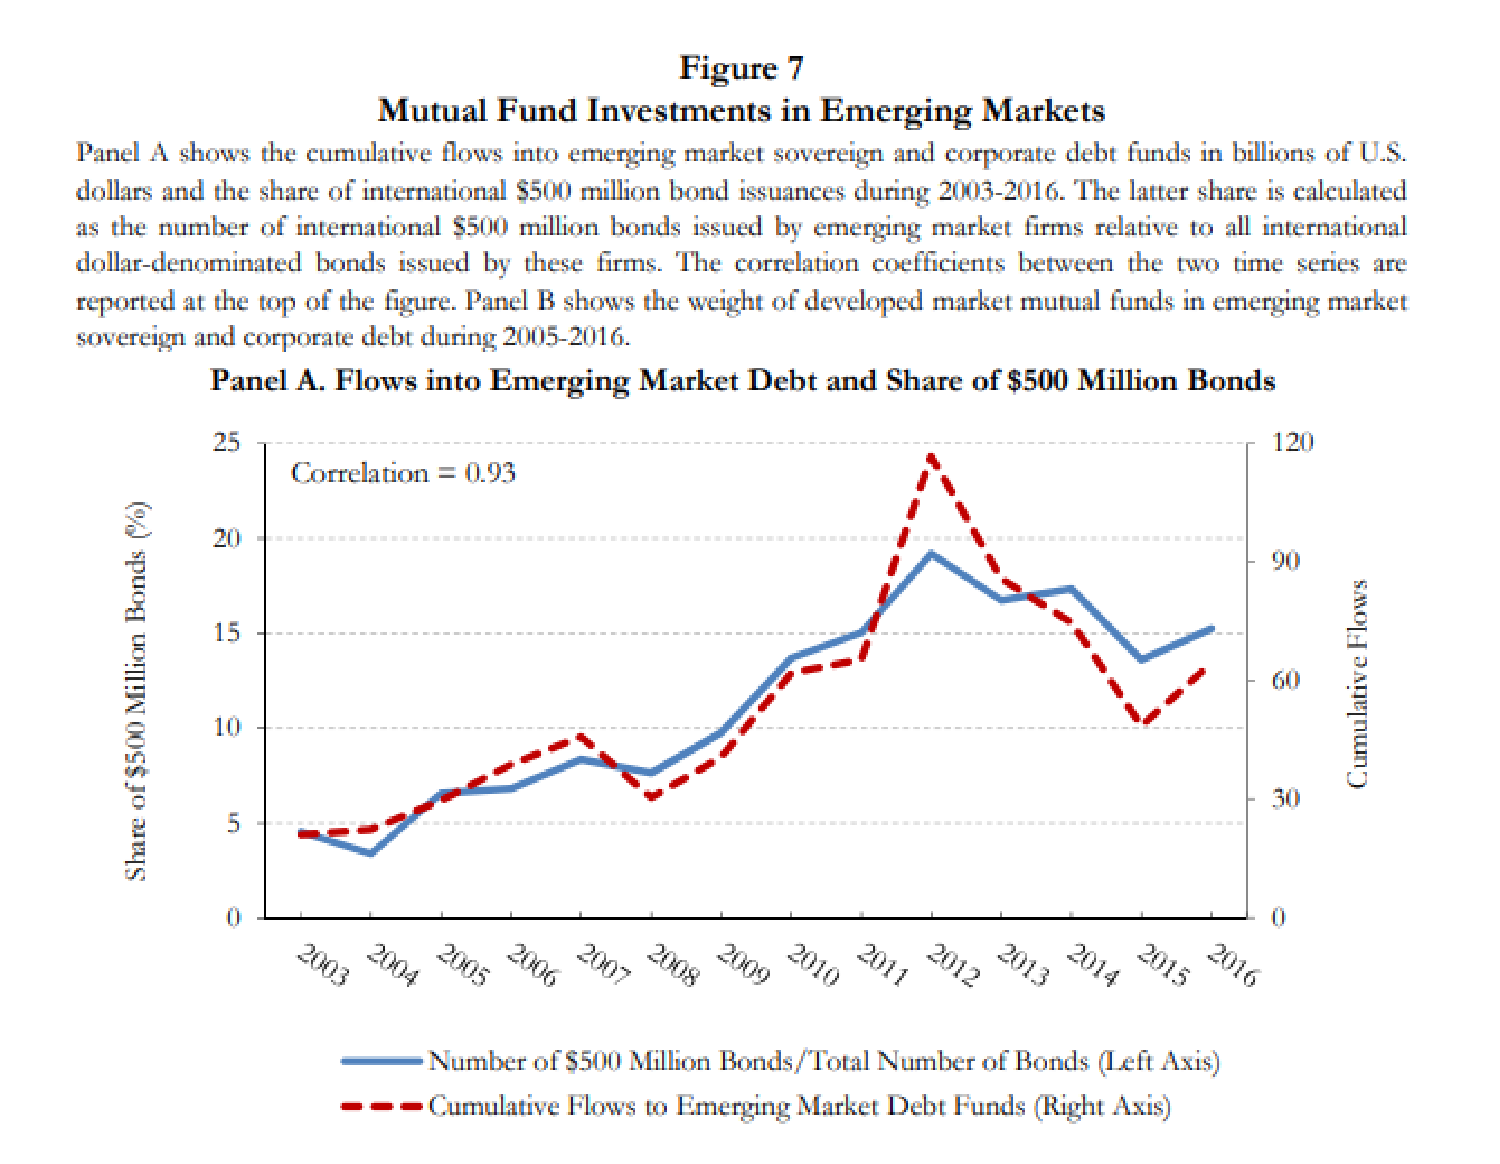 Reaching for yield: the reshaping of the EM corporate debt